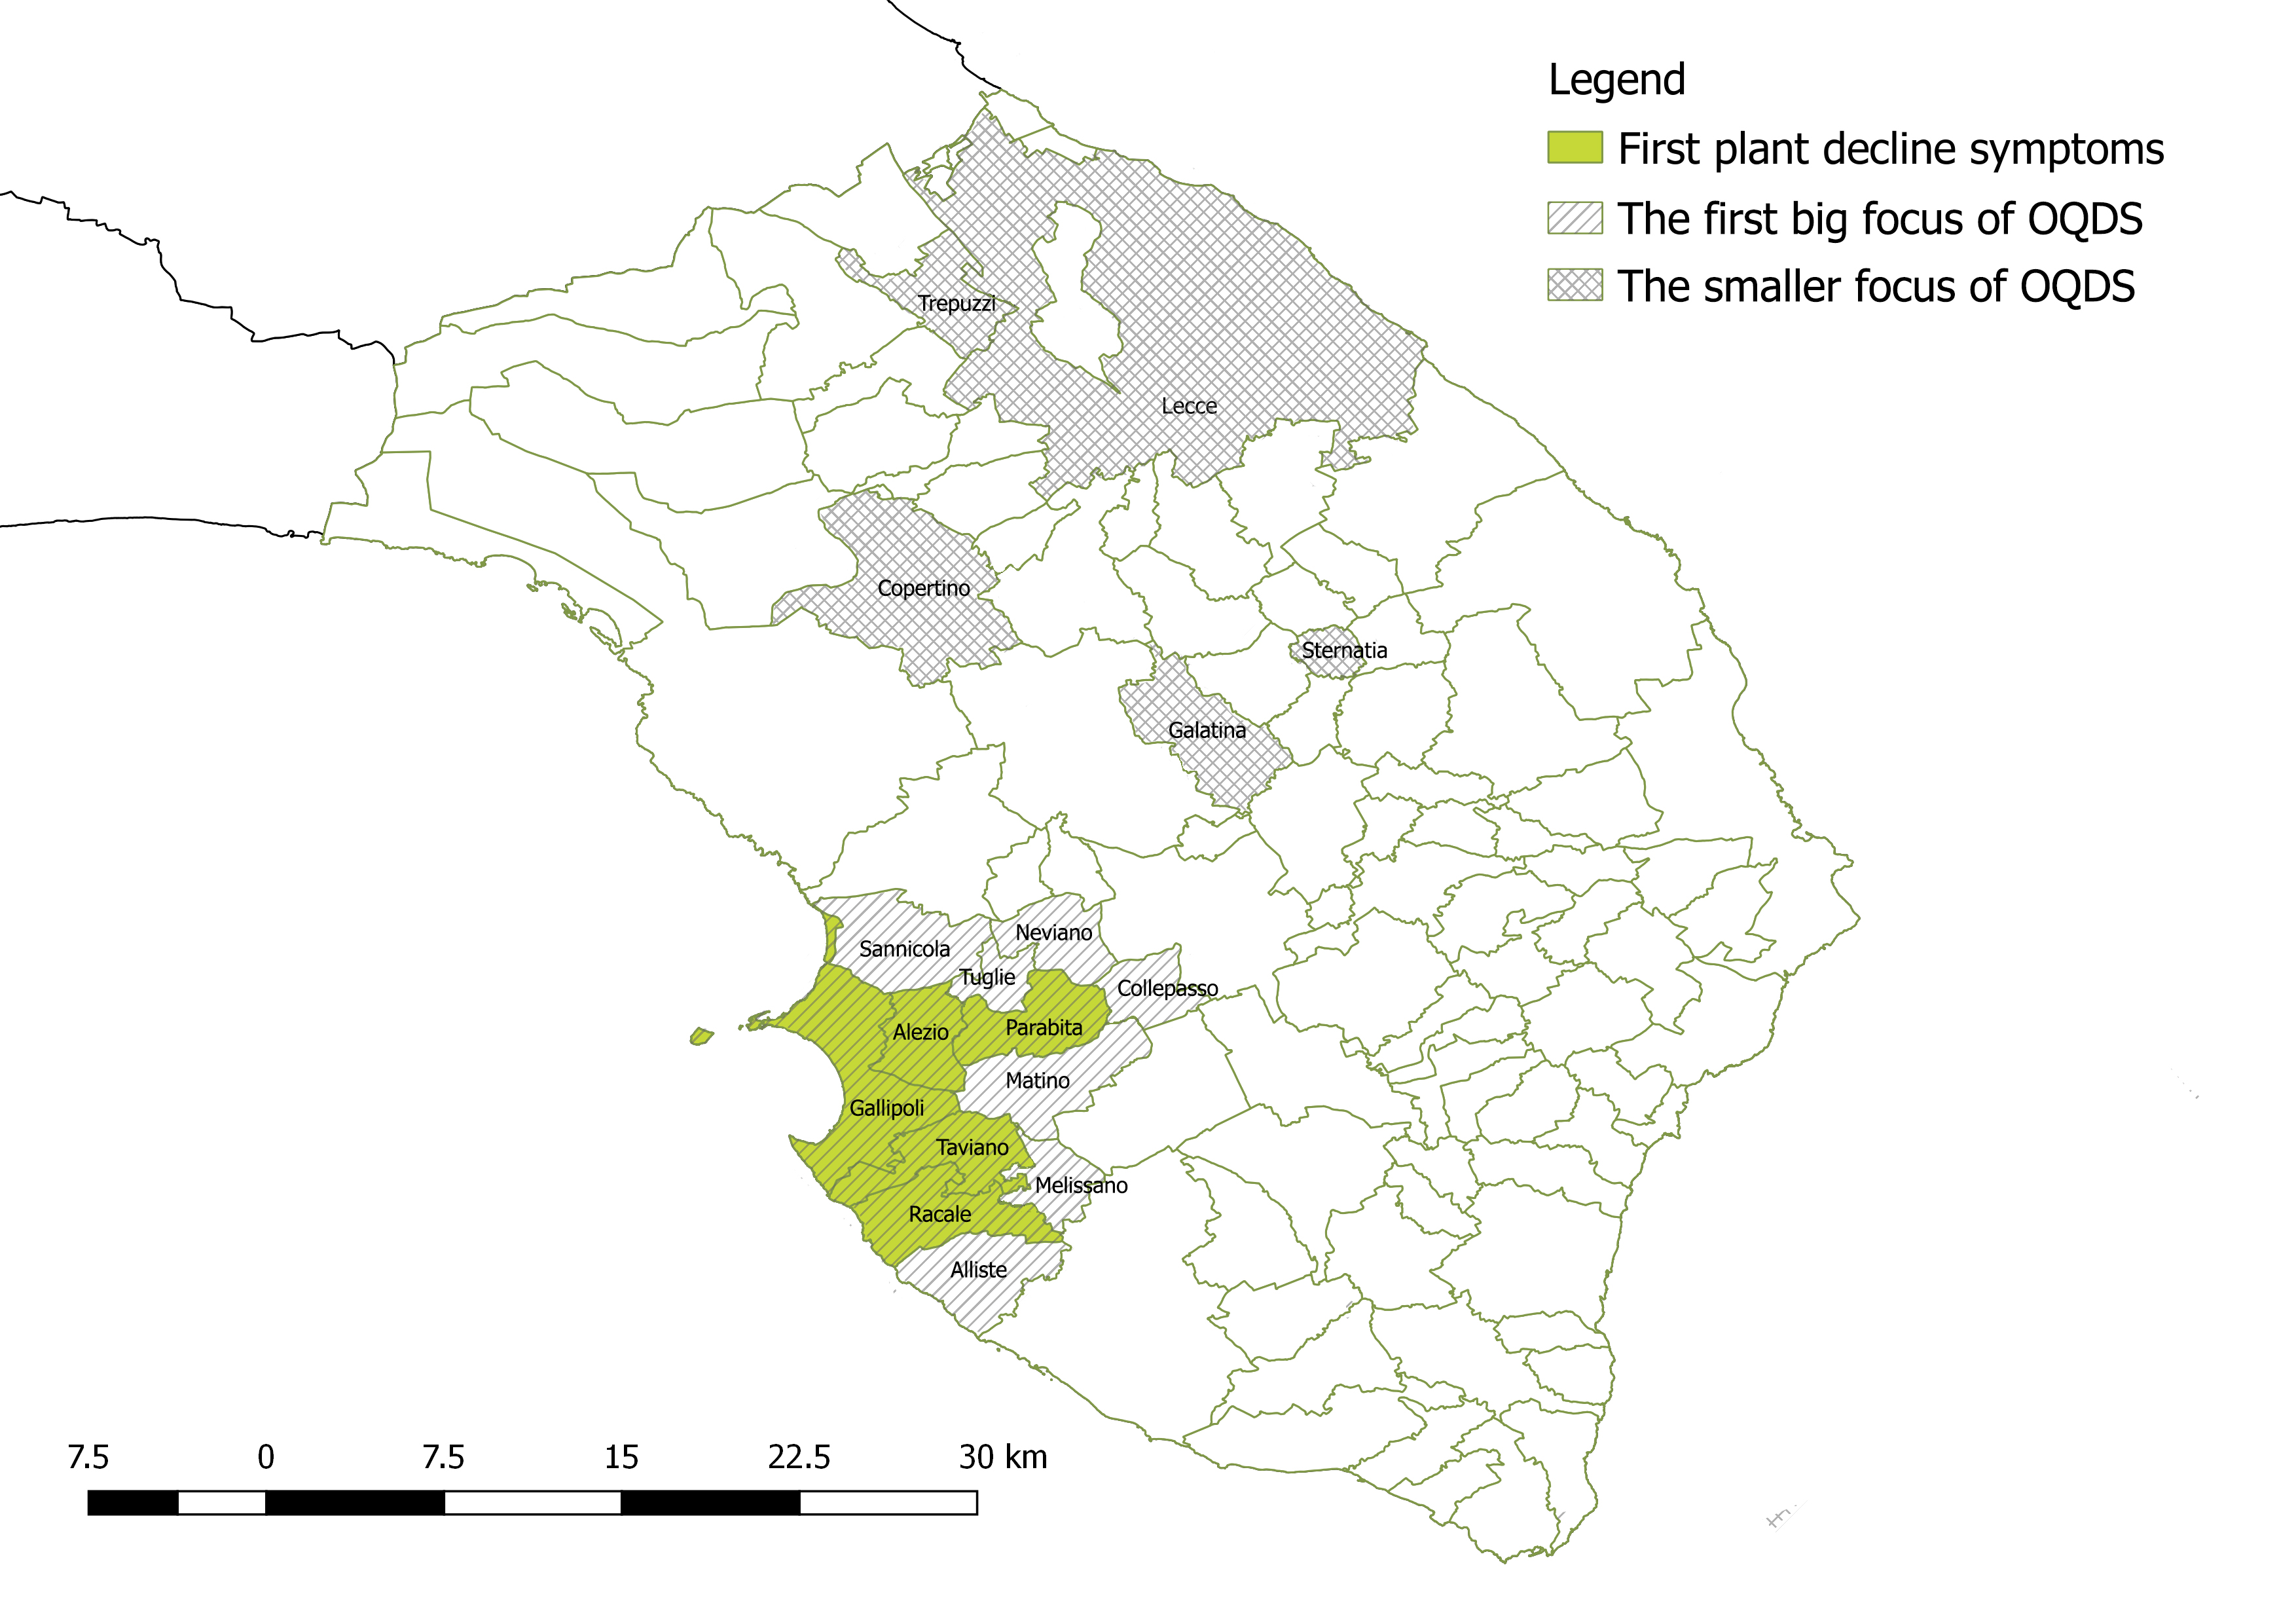 The olive quick decline syndrome (OQDS) diffusion in Apulia Region